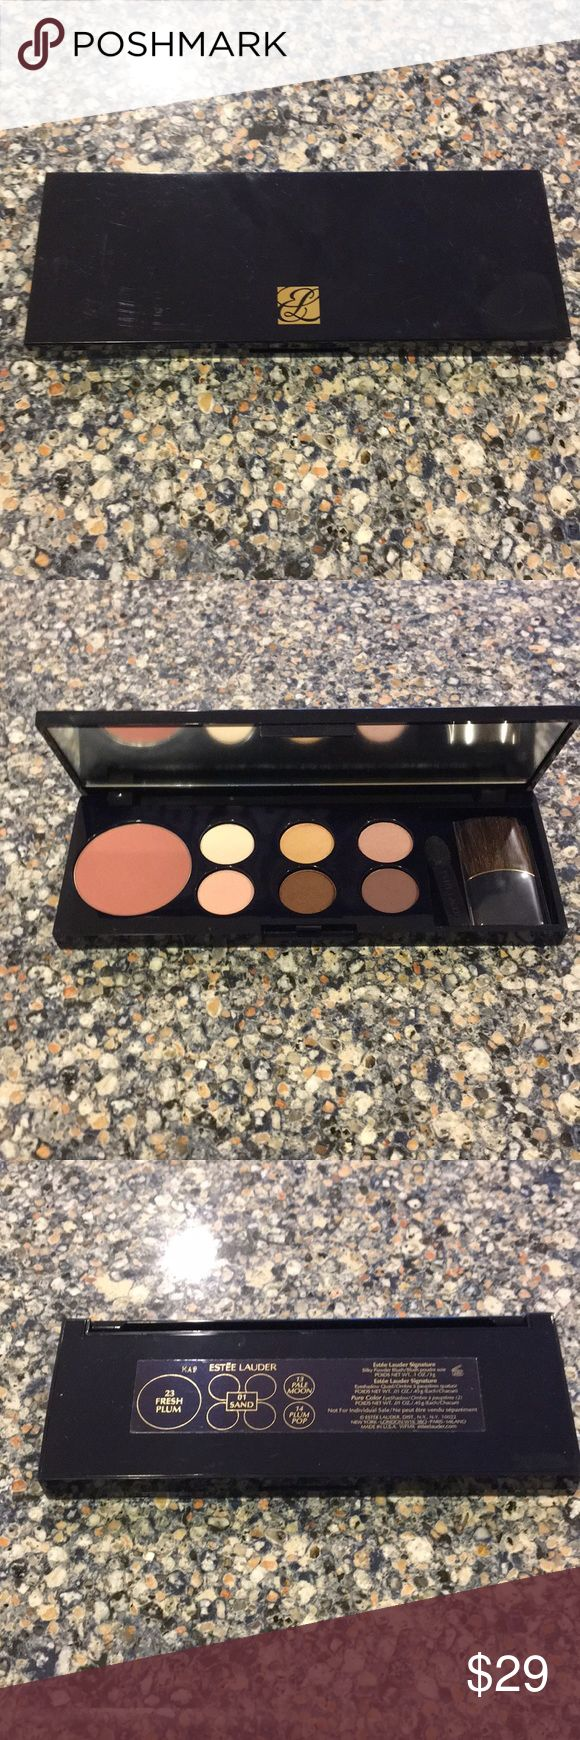 ✨Make an Offer✨Estée Lauder Eye Shadow Palette! NEW (without box!) Super cute shades and colors! Amazing deal! 😊 Estee Lauder Makeup Eyeshadow